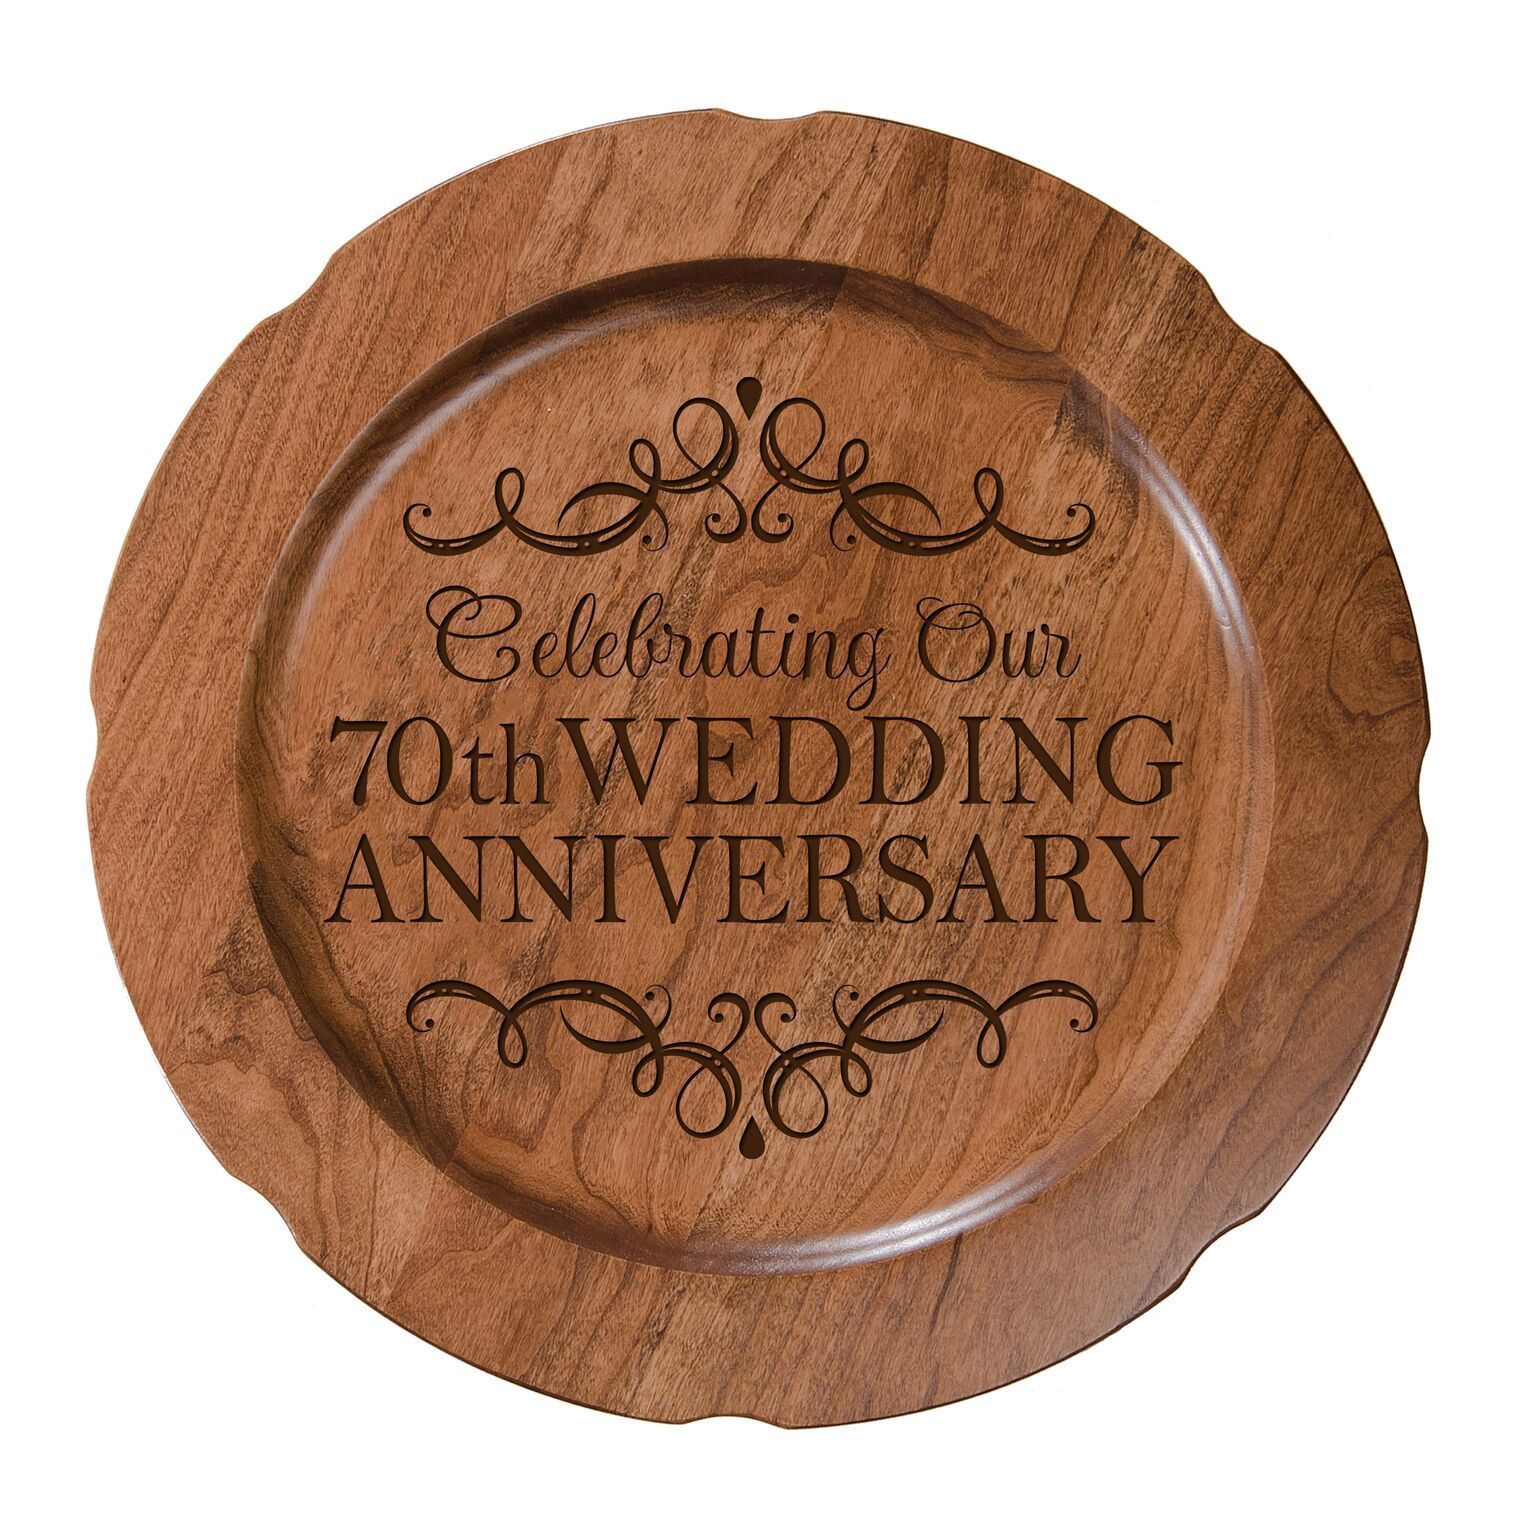 Decorative 70th Wedding Anniversary Plate Gift for Mr